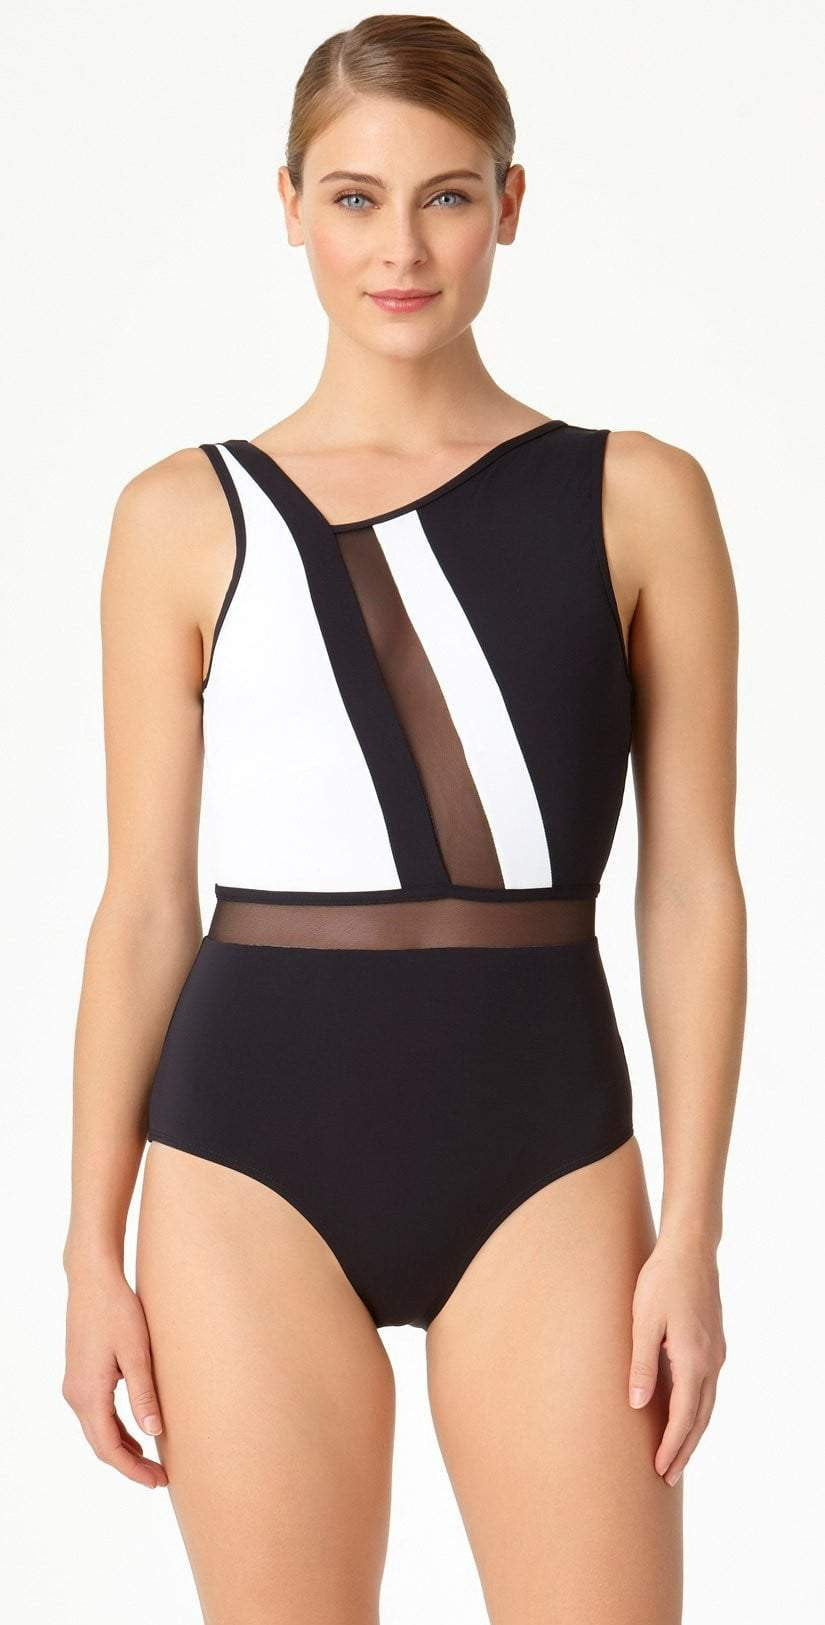 Anne Cole Hot Mesh Asymmetrical One Piece 18MO08004-Black/White front view